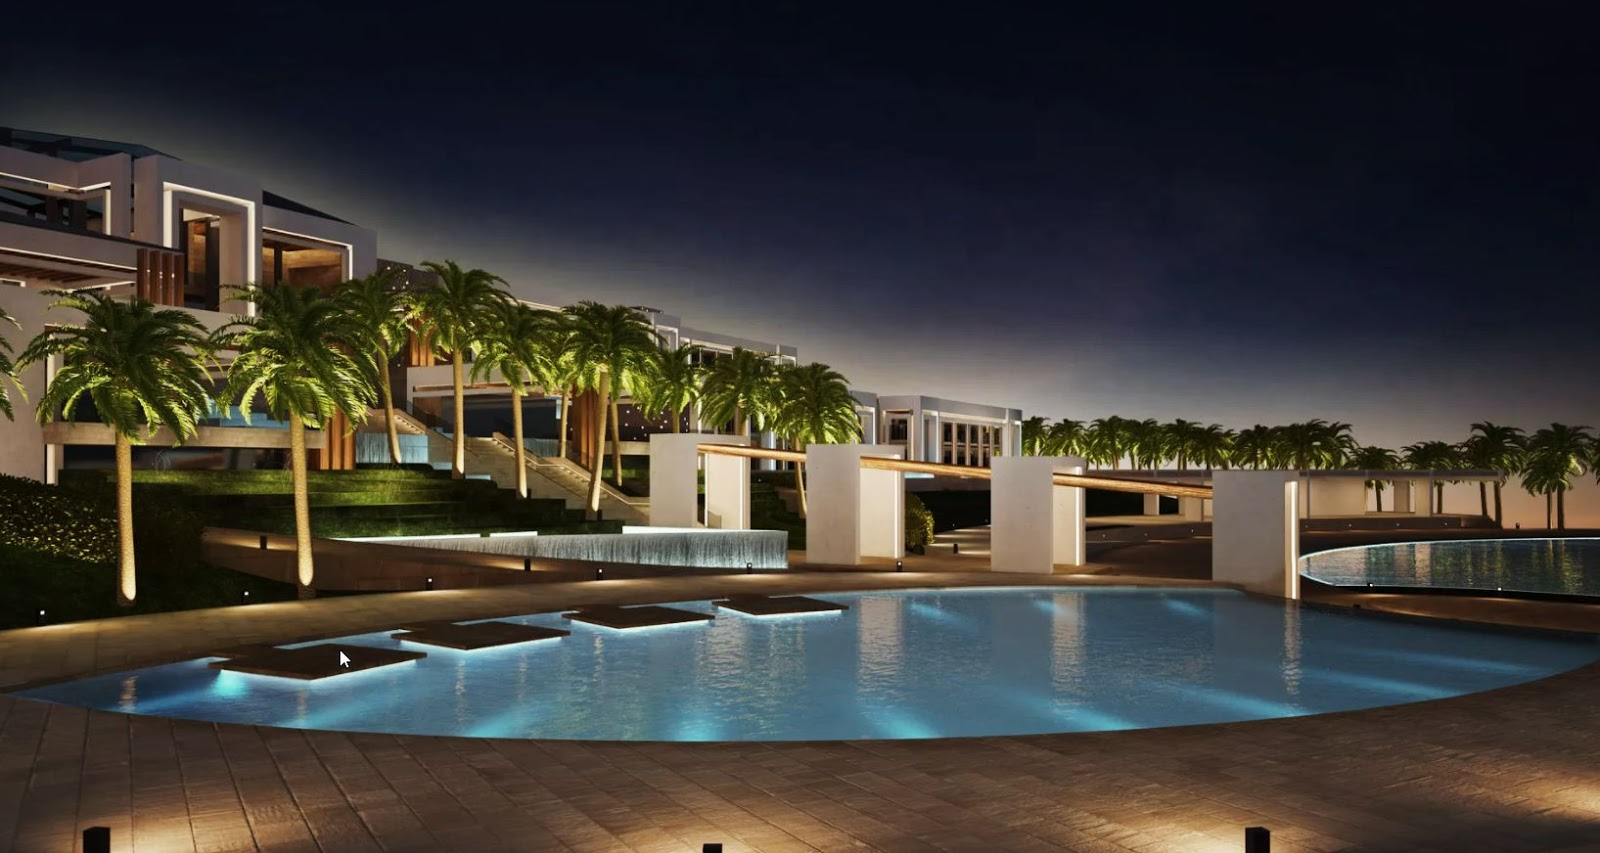 mayia-exclusive-resort-photorealistic